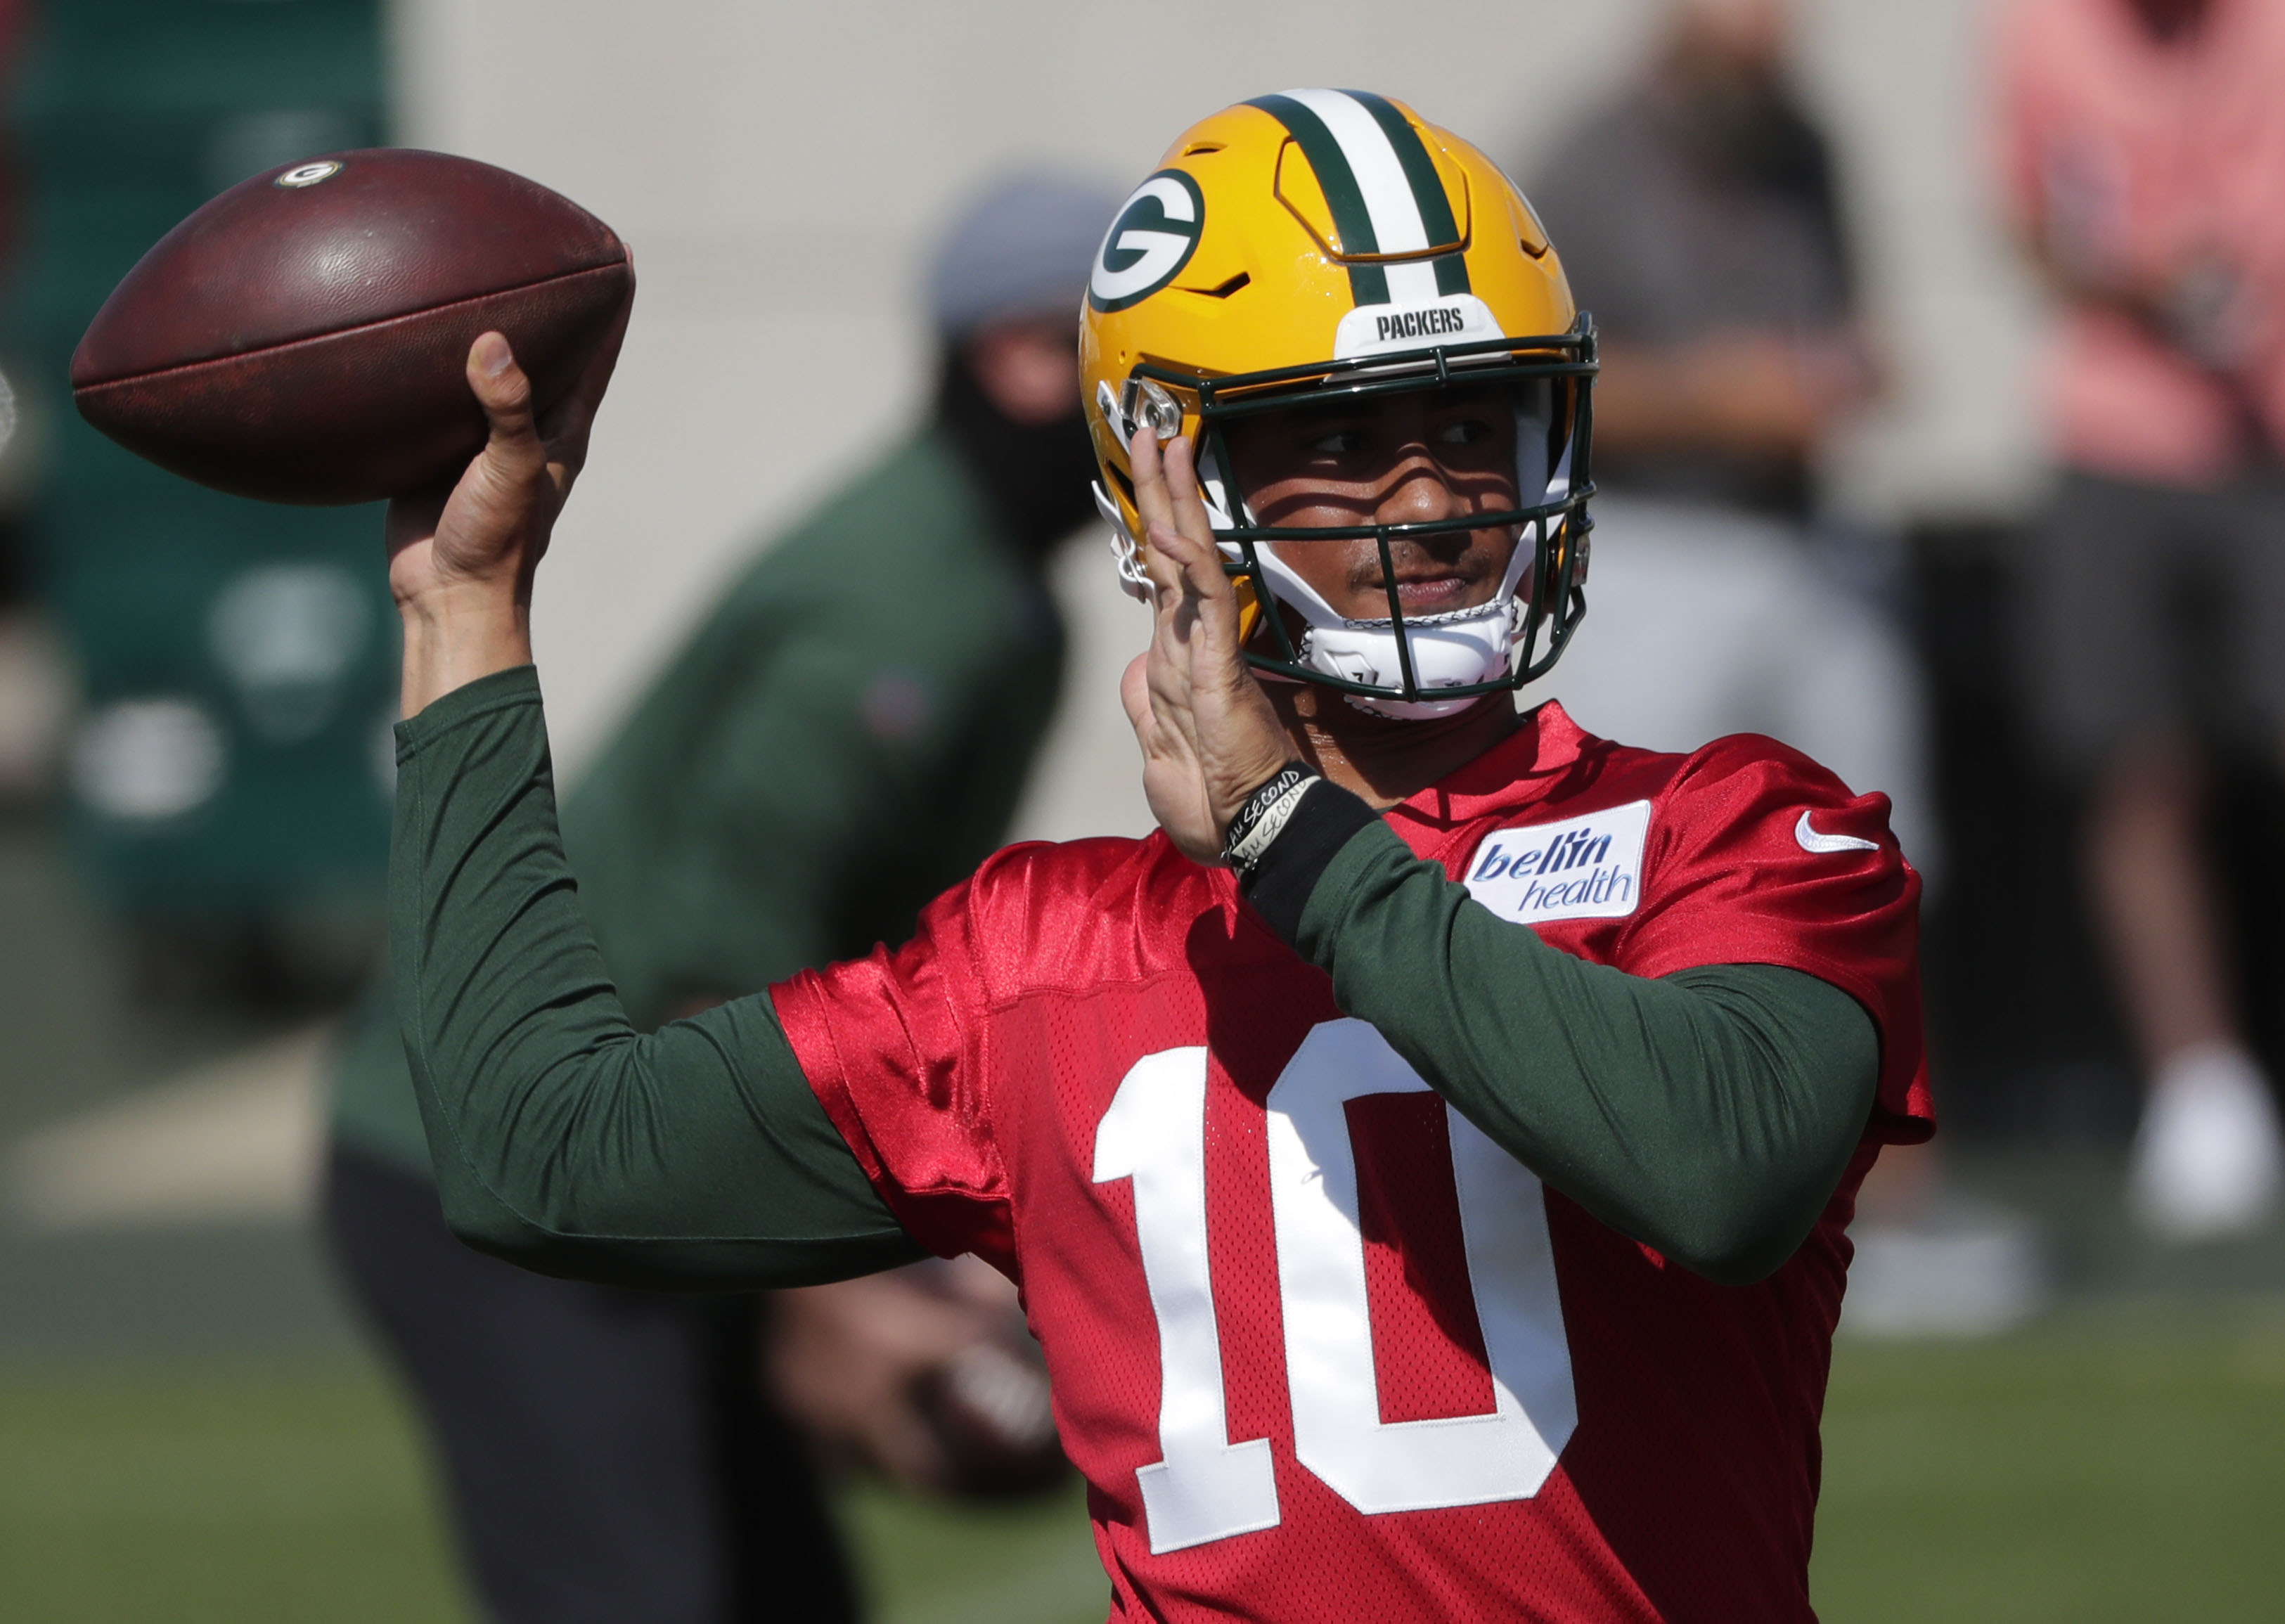 Four Reasons Why It's Too Soon for the Packers to Write Off Jordan Love